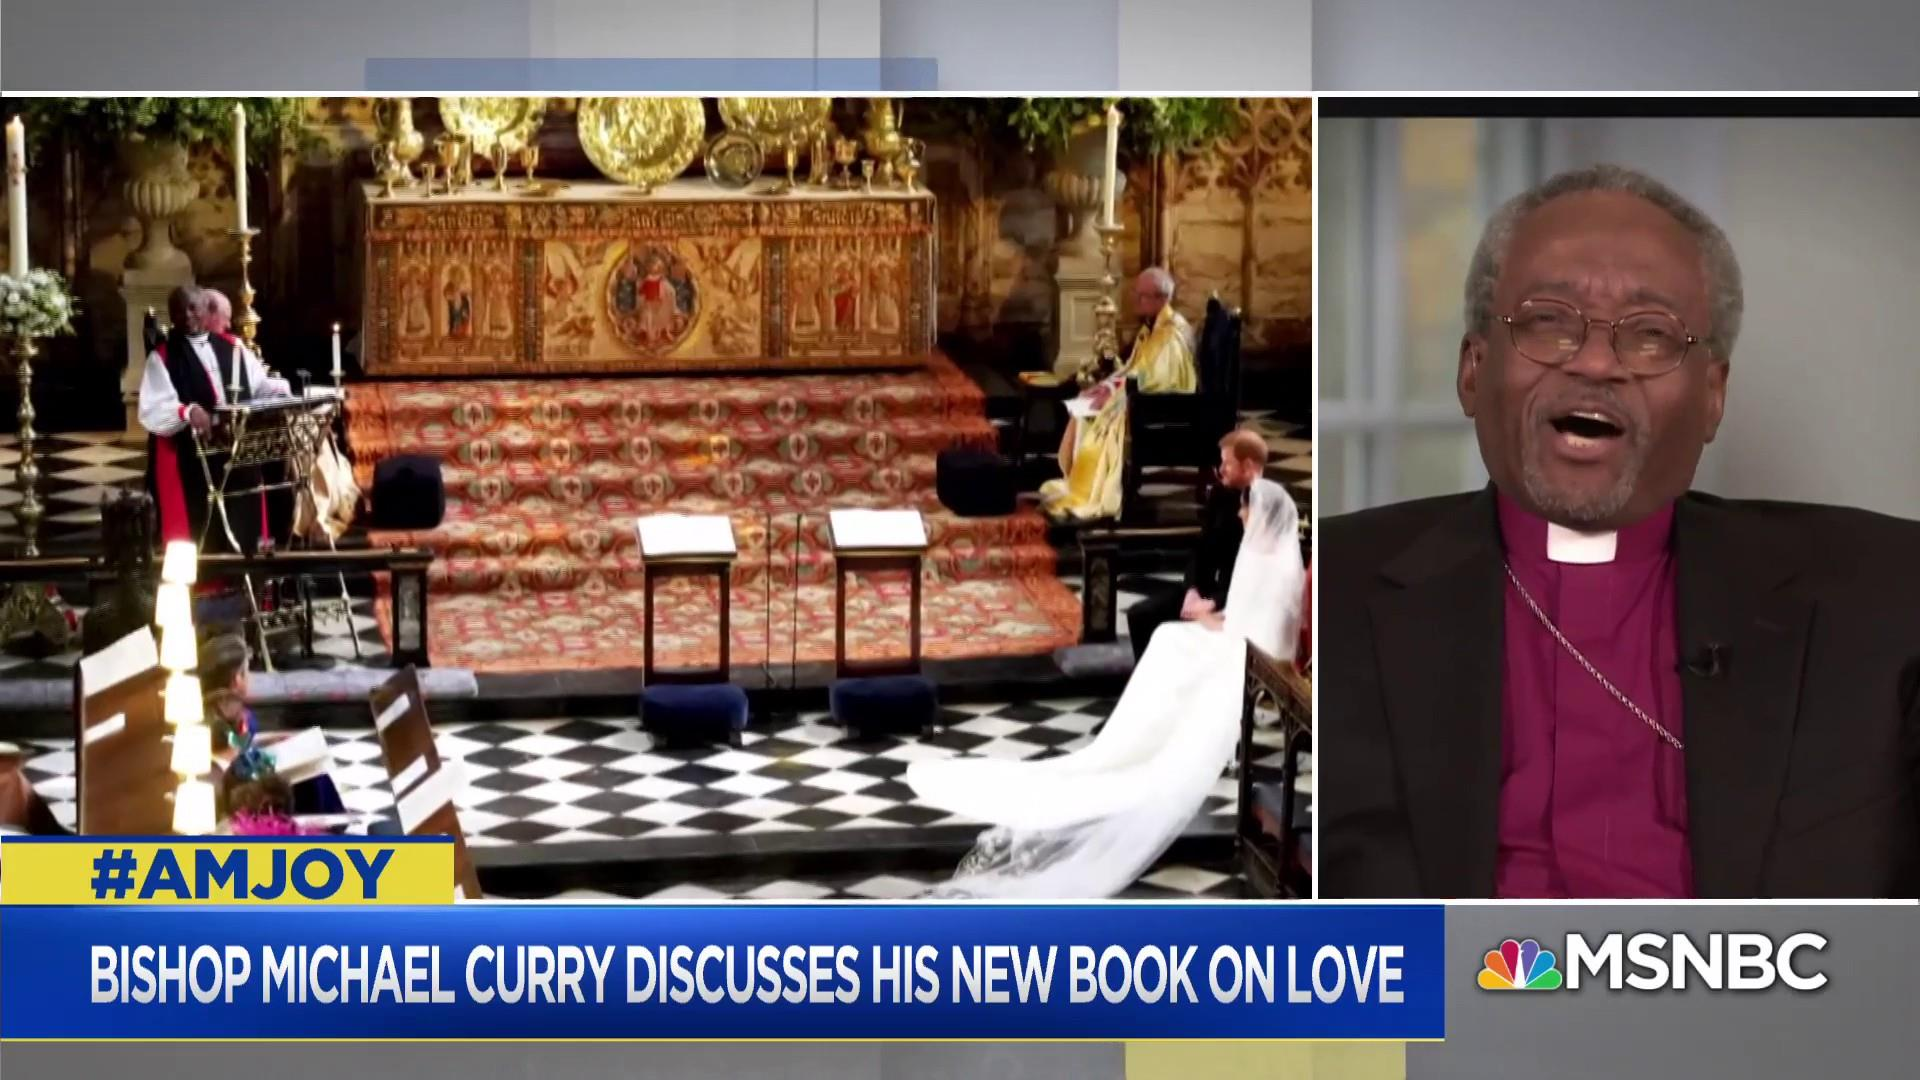 Bishop Michael Curry on his new book: Love is tried and true. We just have to do it.